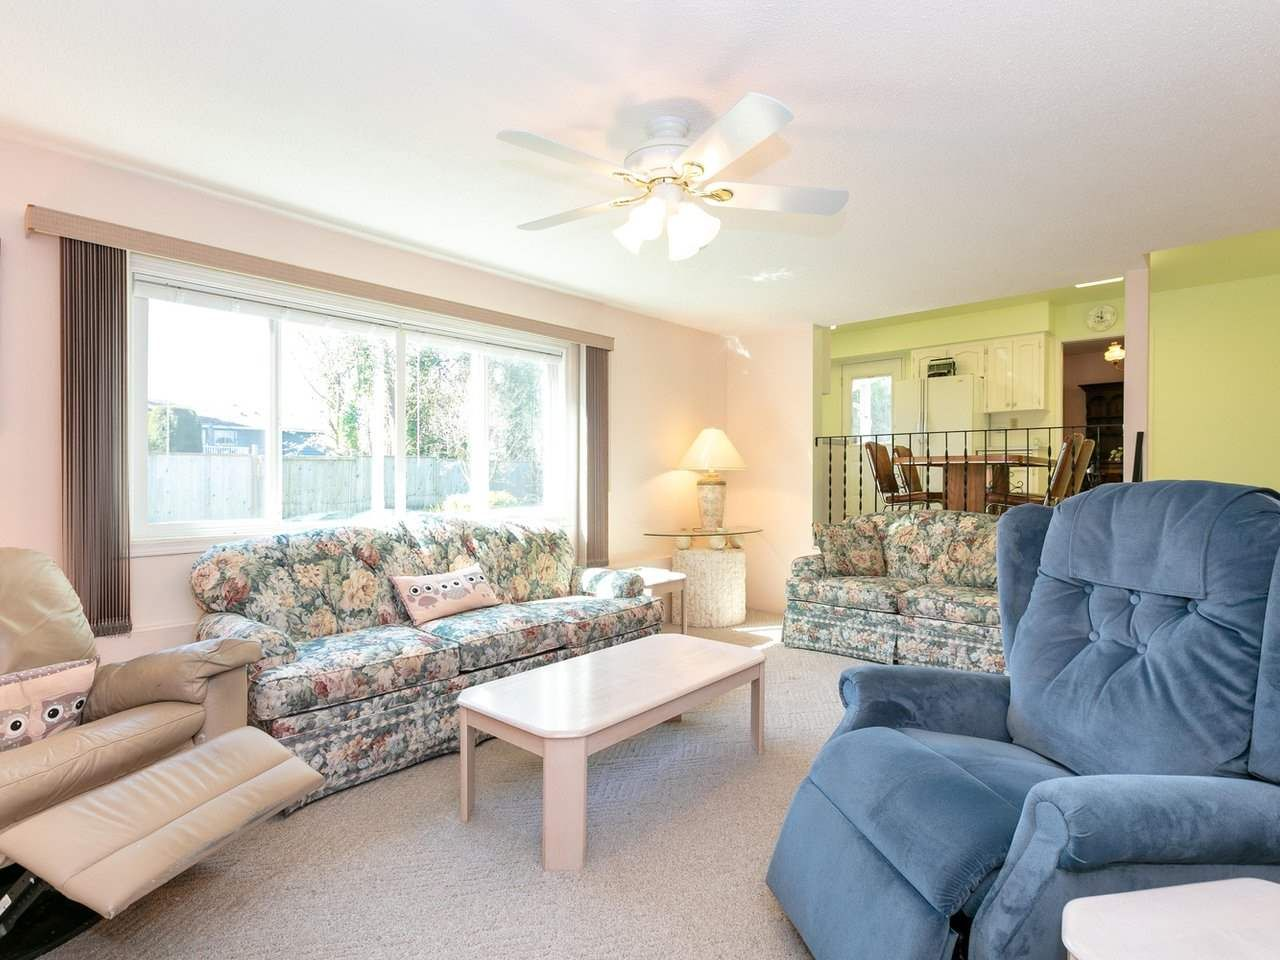 Photo 10: Photos: 1422 GROVER Avenue in Coquitlam: Central Coquitlam House for sale : MLS®# R2568207